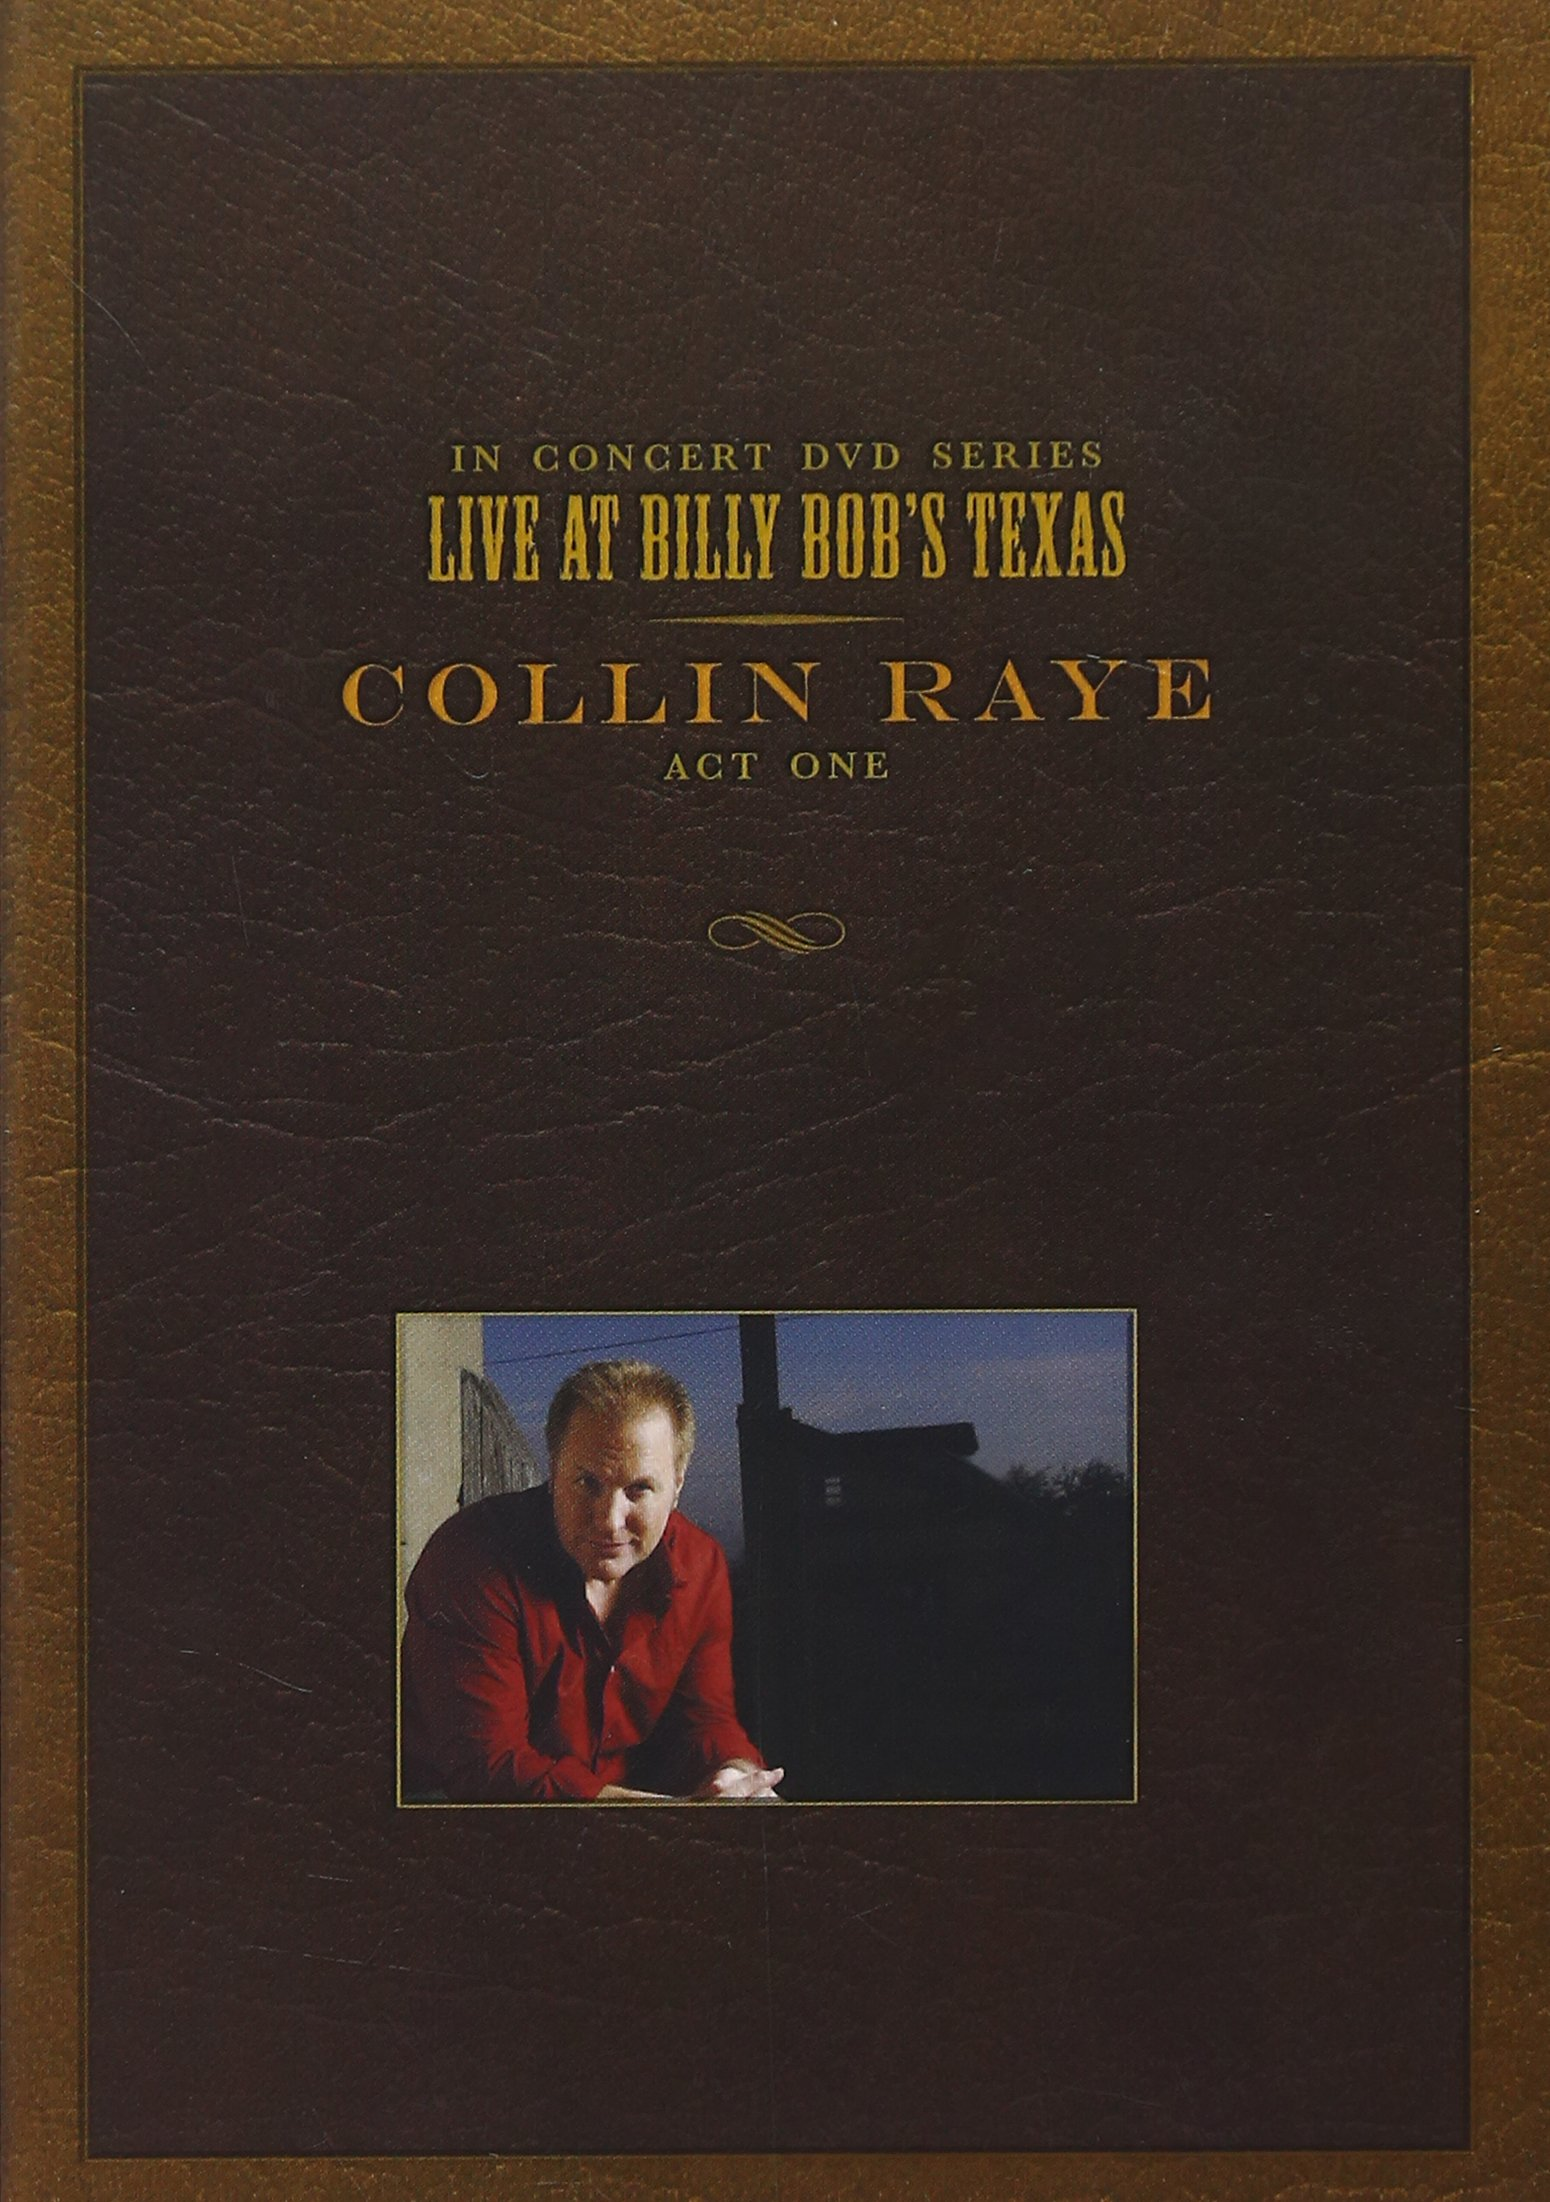 Collin Raye, Act One: Live at Billy Bob's Texas